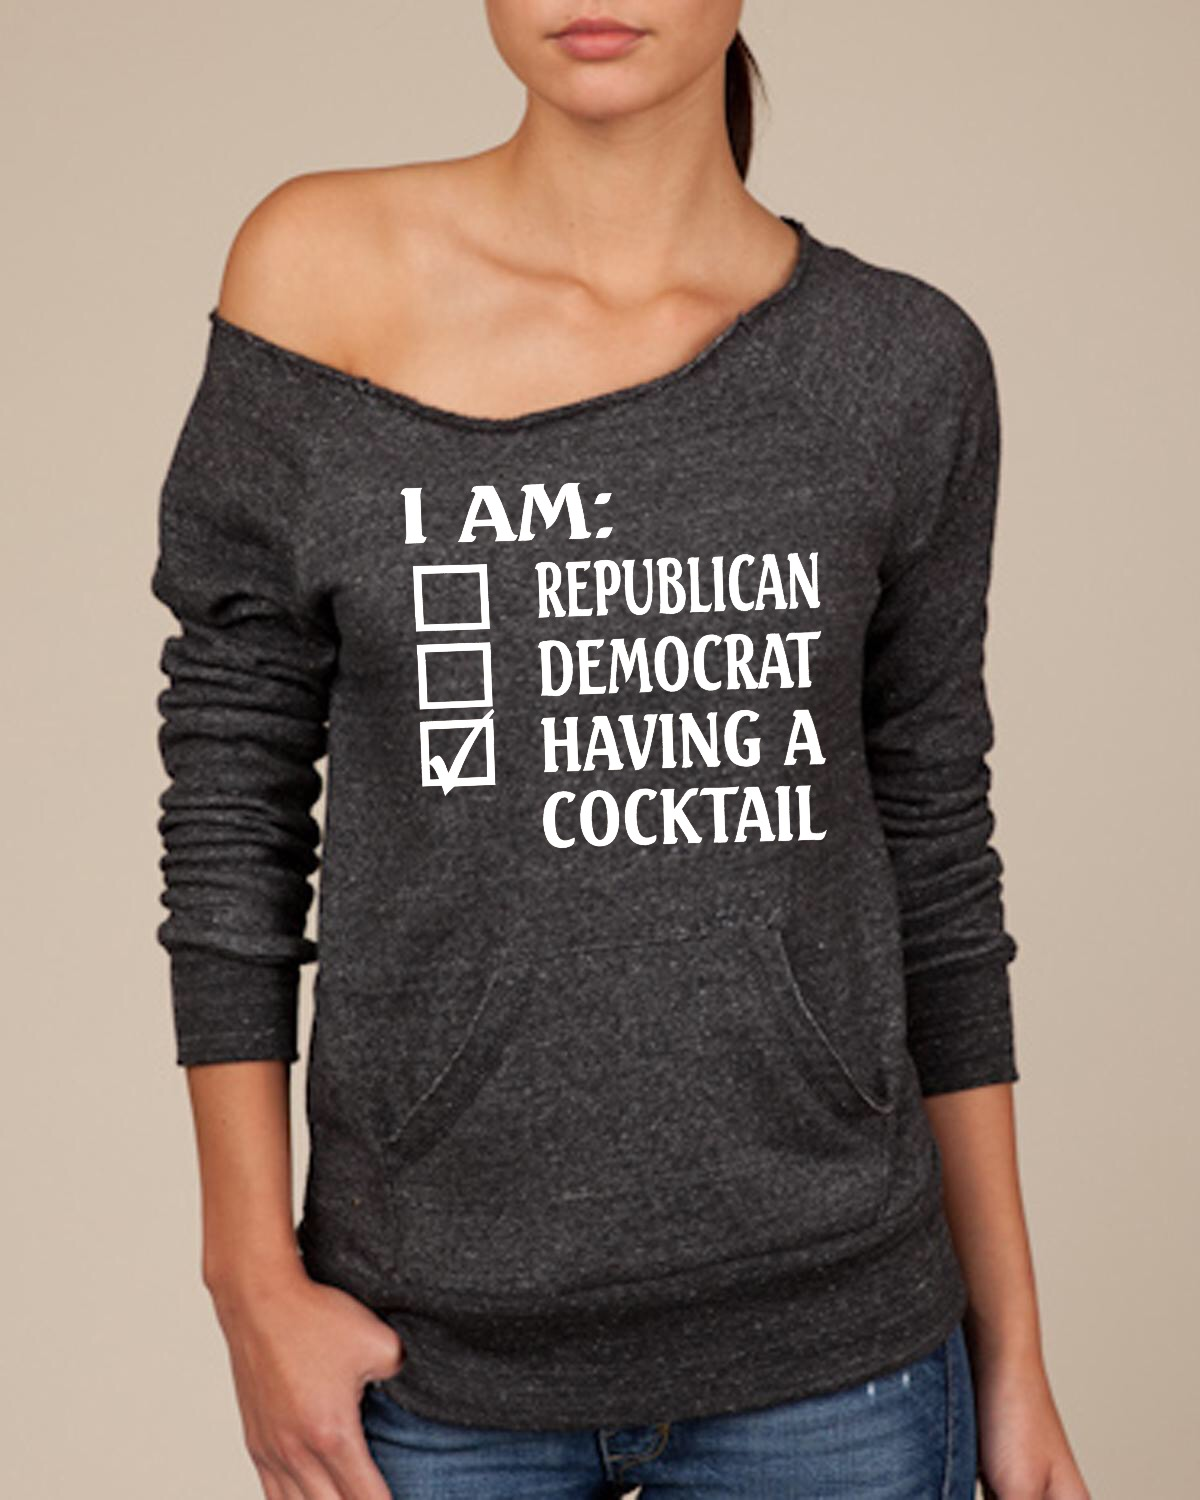 I Am Republican.  Democrat.  Having A Cocktail.  Women's Scoop Neck Sweatshirt